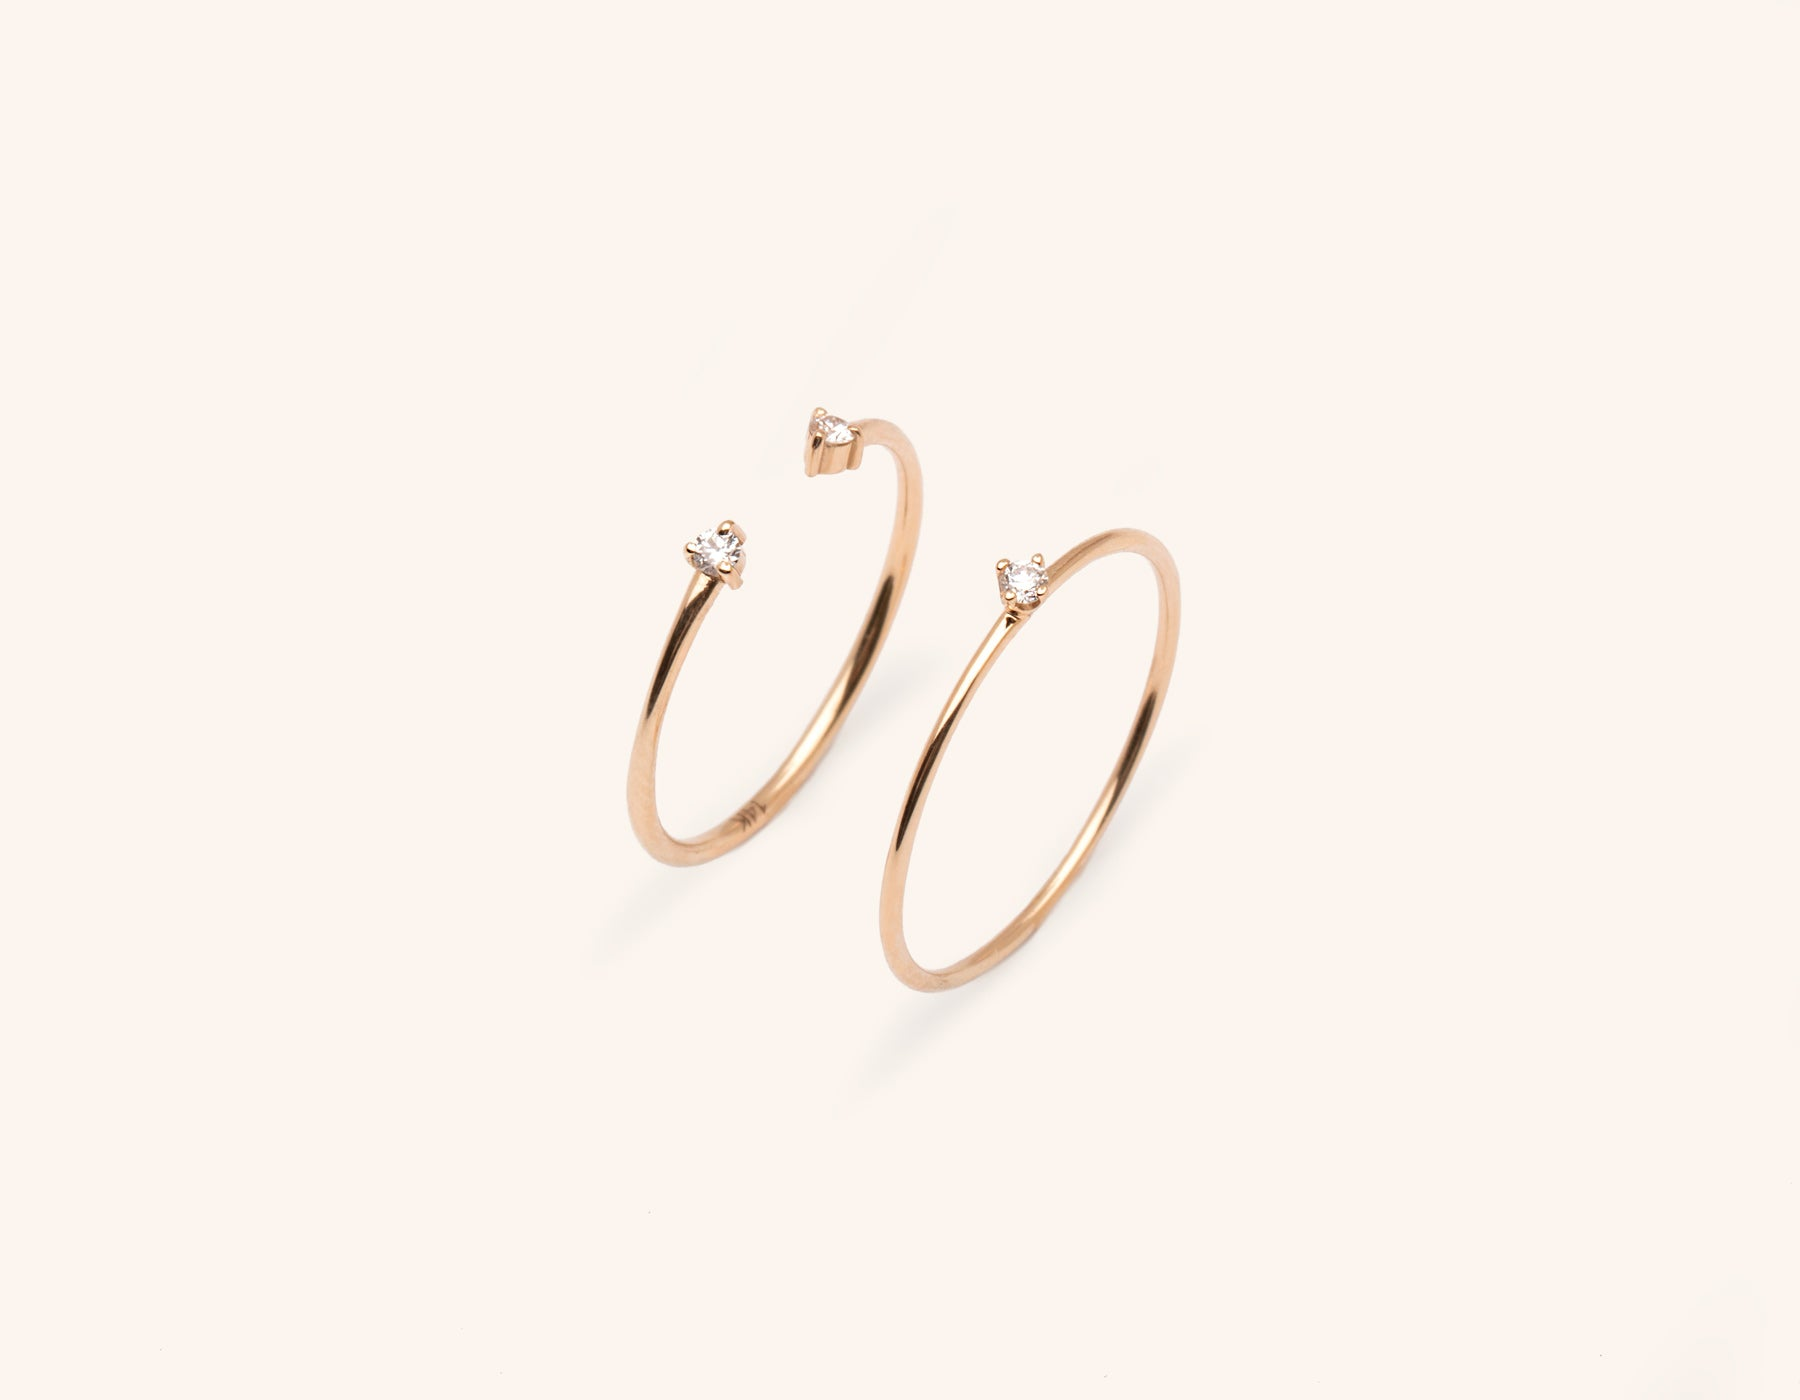 Vrai and Oro simple elegant solid gold Constellation Ring Bundle Stack small round diamond stacker with diamond dot cuff ring, 14K Rose Gold